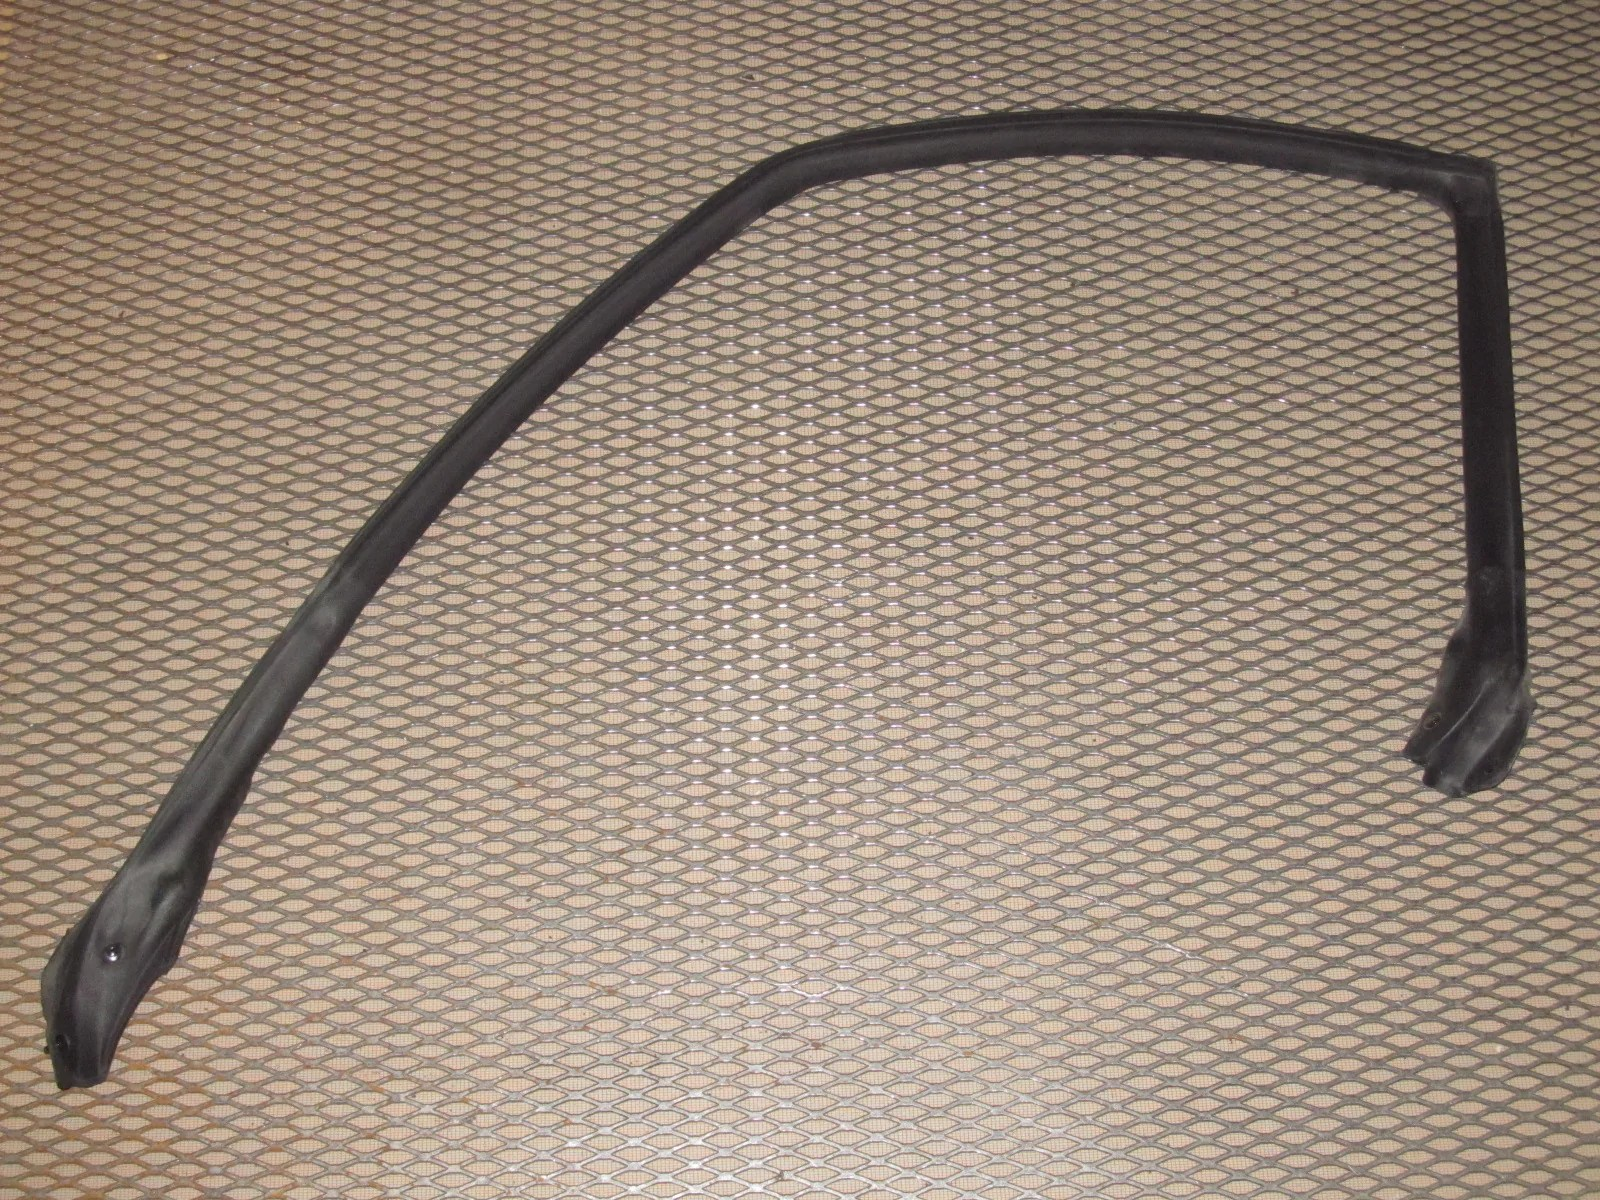 85 86 toyota mr2 oem chassis body weather stripping rubber seal left  [ 1600 x 1200 Pixel ]